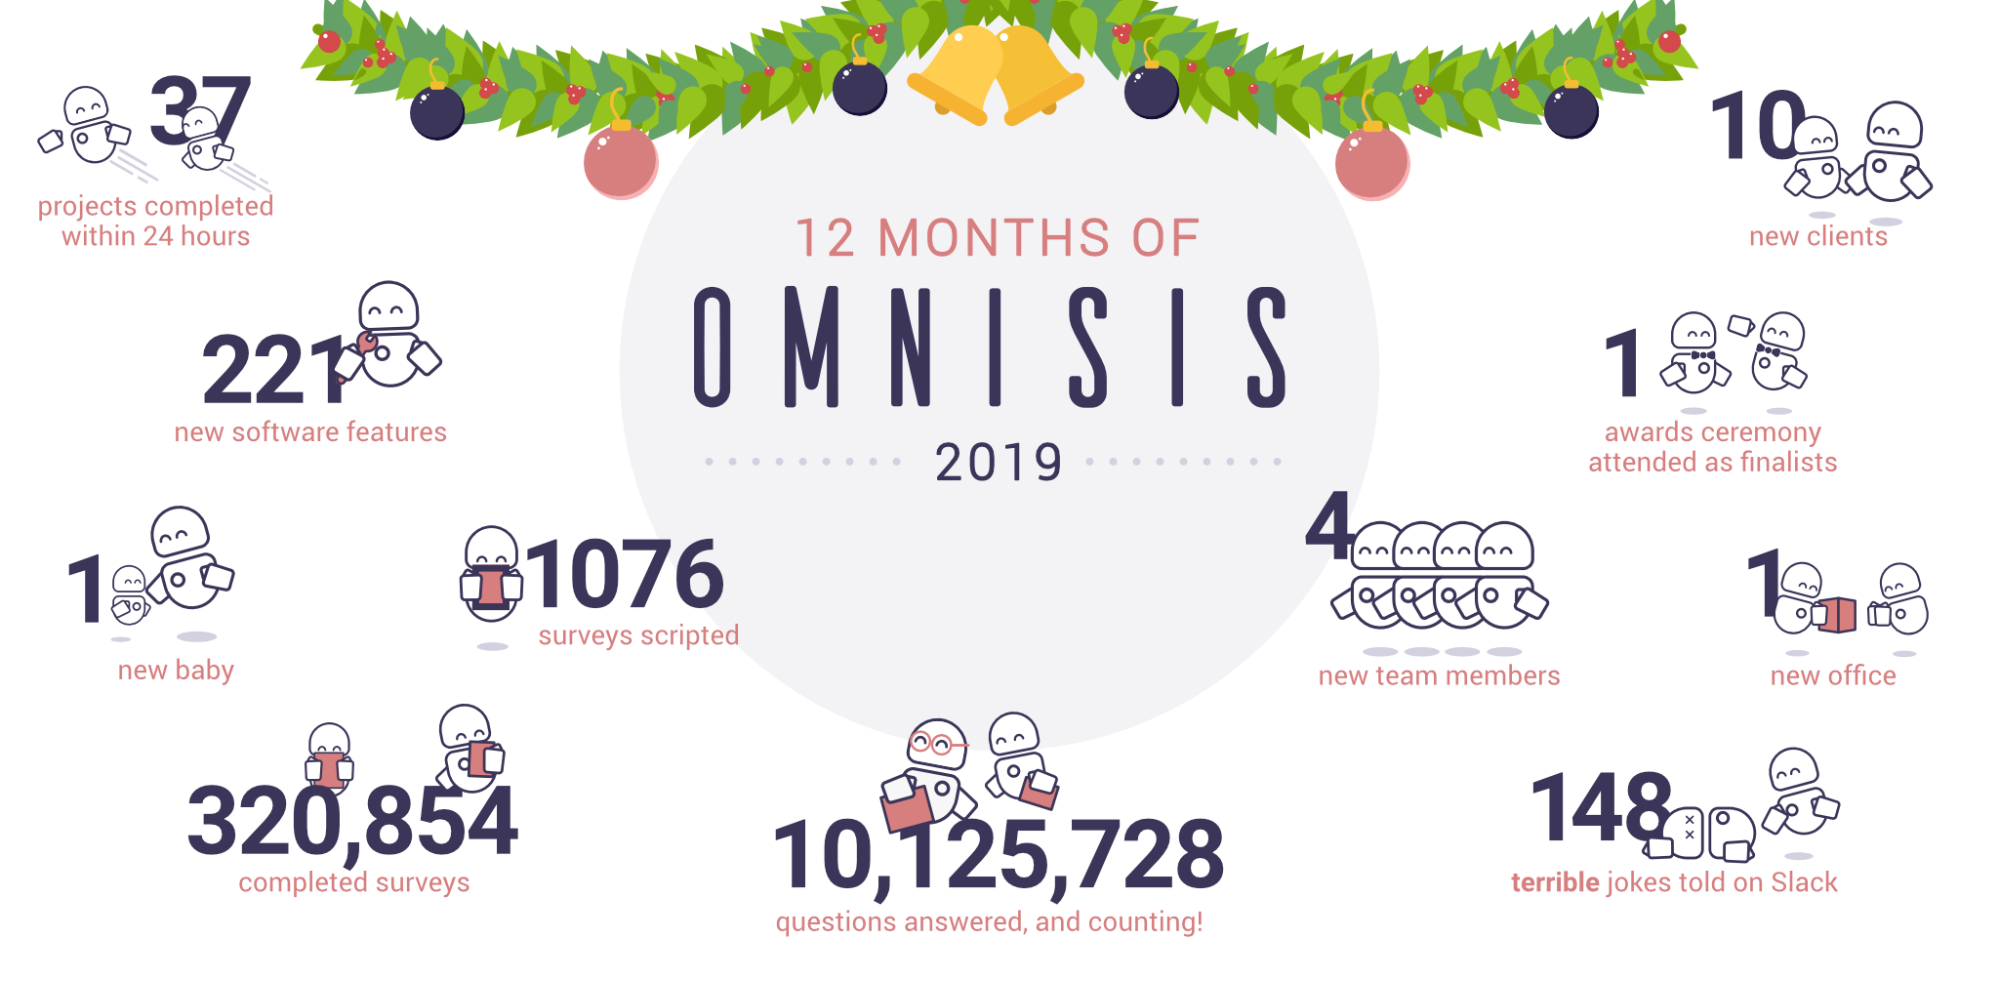 Celebrating 12 months of Omnisis